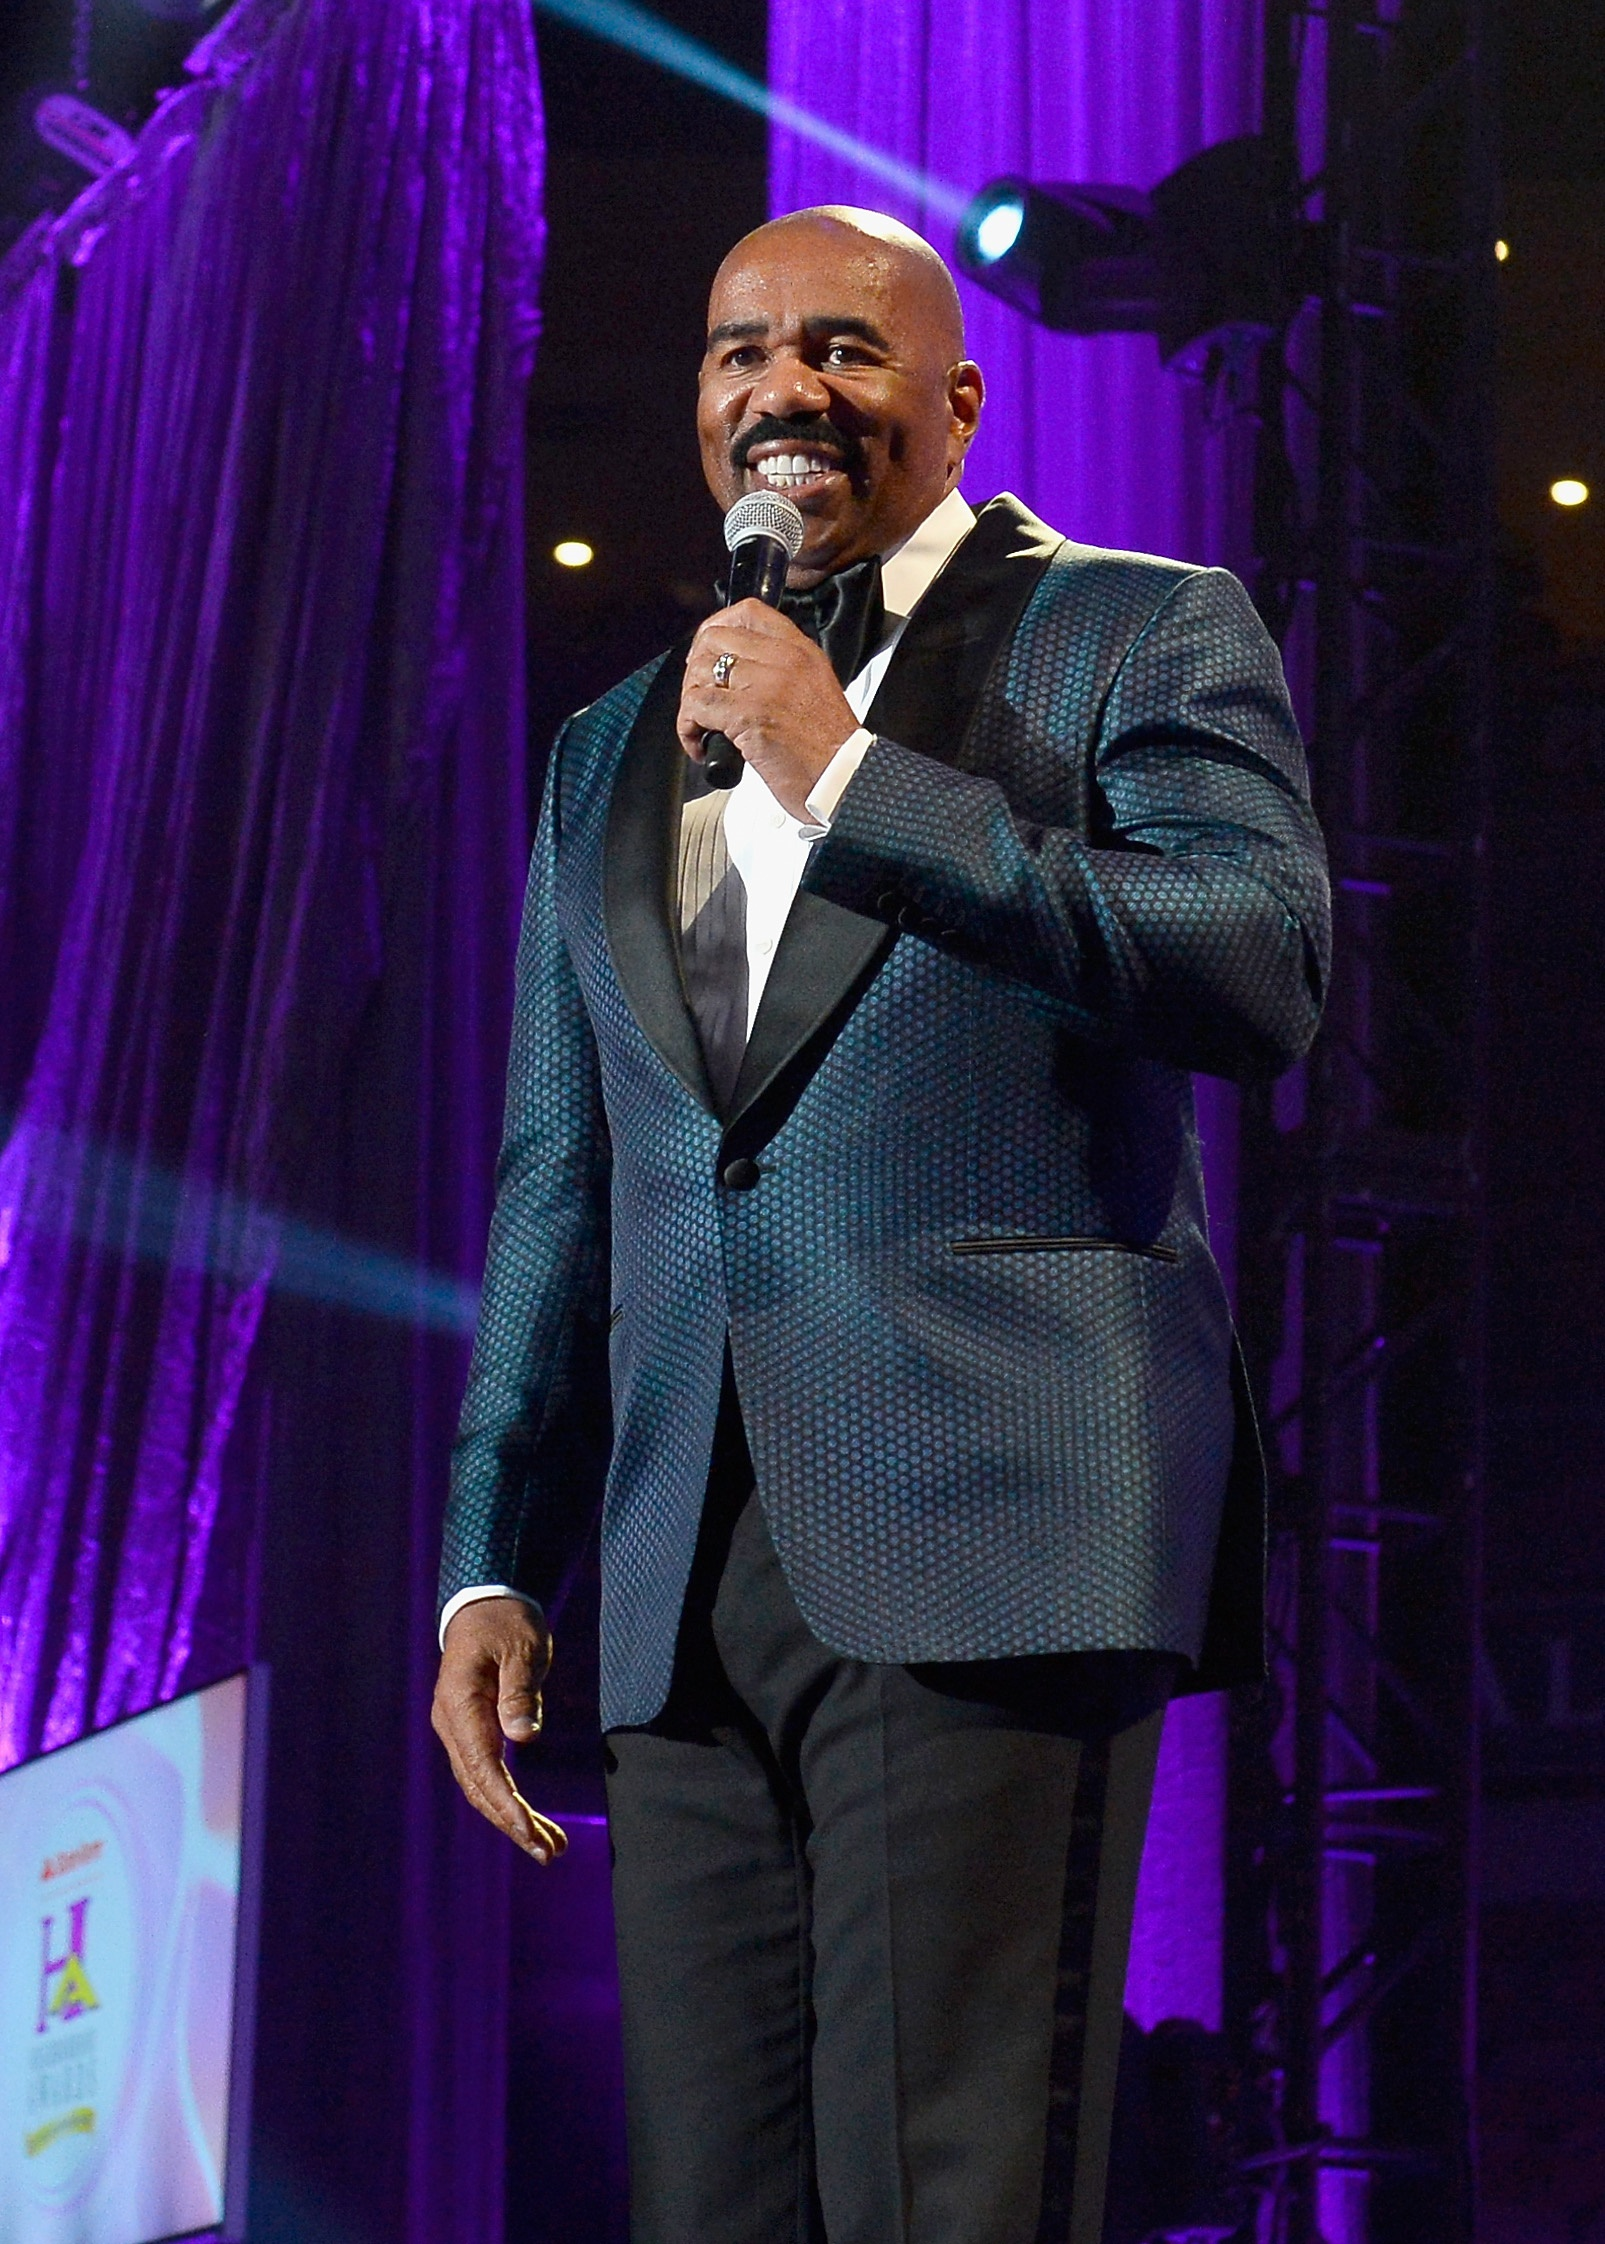 Steve harvey speaks at the 2016 State Farm Neighborhood Awards in Las Vegas.